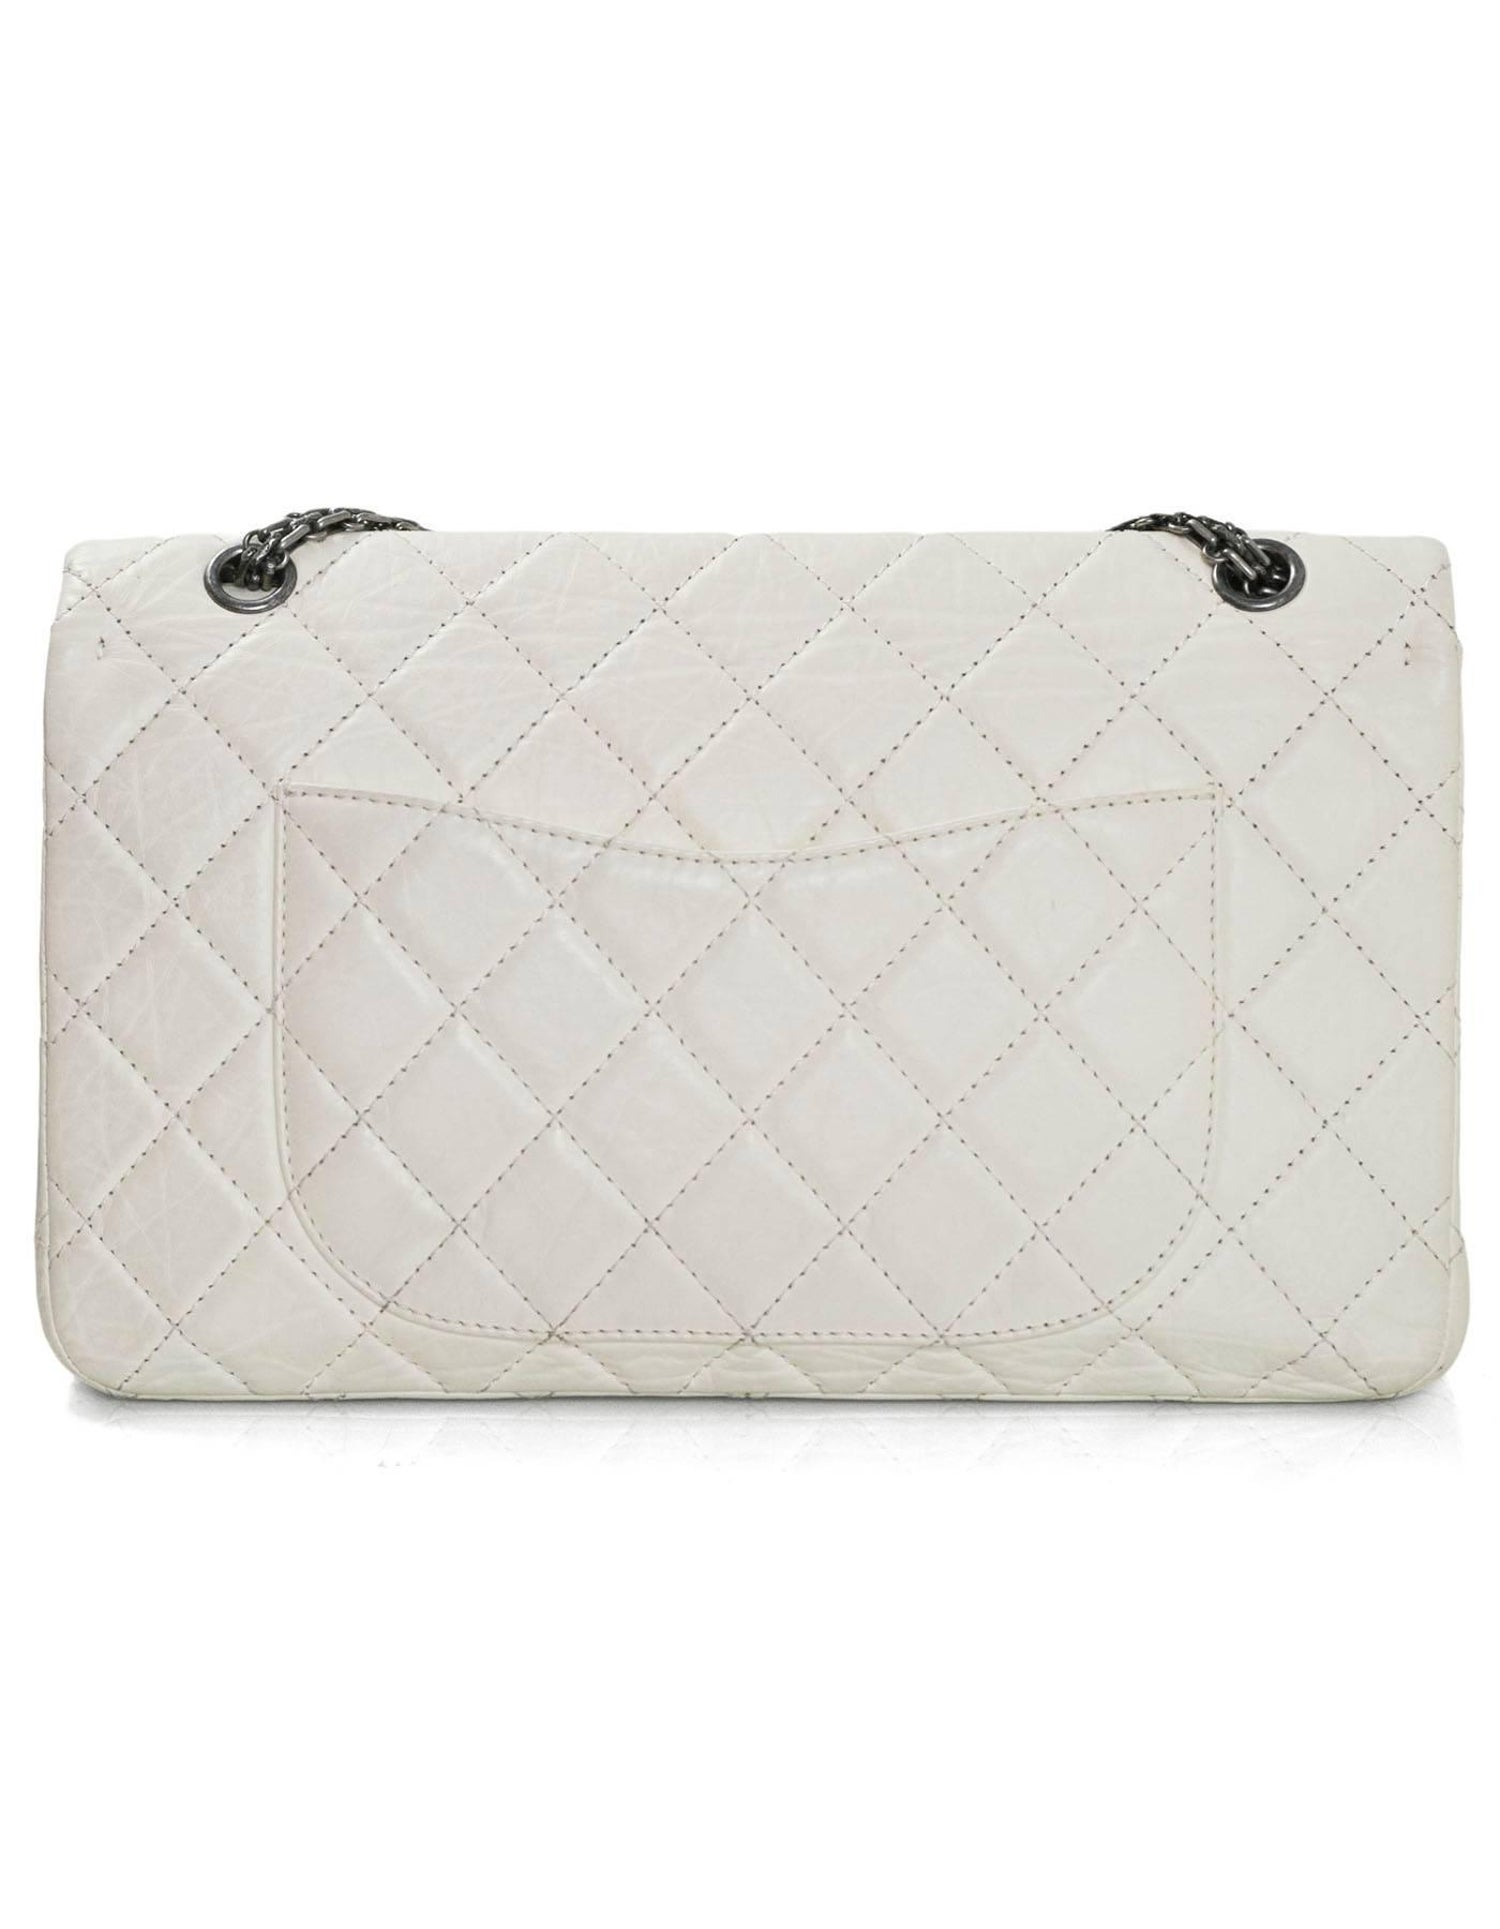 ceb9ff5d6b00 Chanel Ivory Quilted Calfskin 2.55 Reissue 227 Jumbo Double Flap Bag at  1stdibs